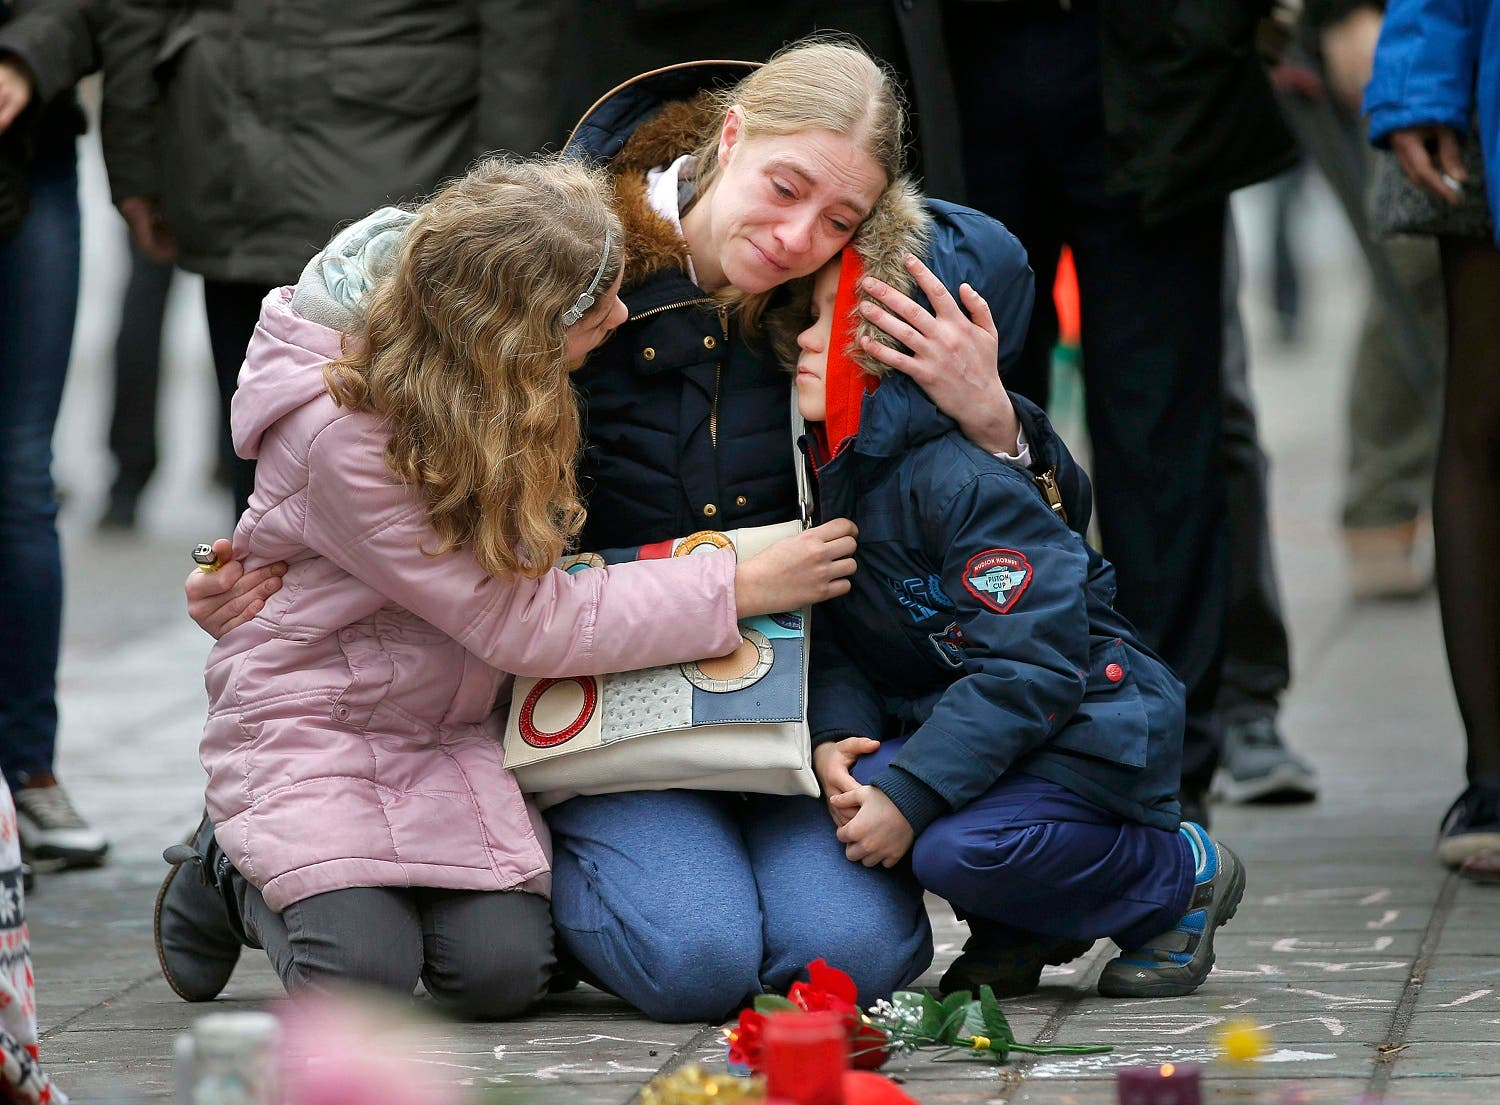 A woman consoles her children at a street memorial following Tuesday's bomb attacks in Brussels, Belgium, March 23, 2016. REUTERS